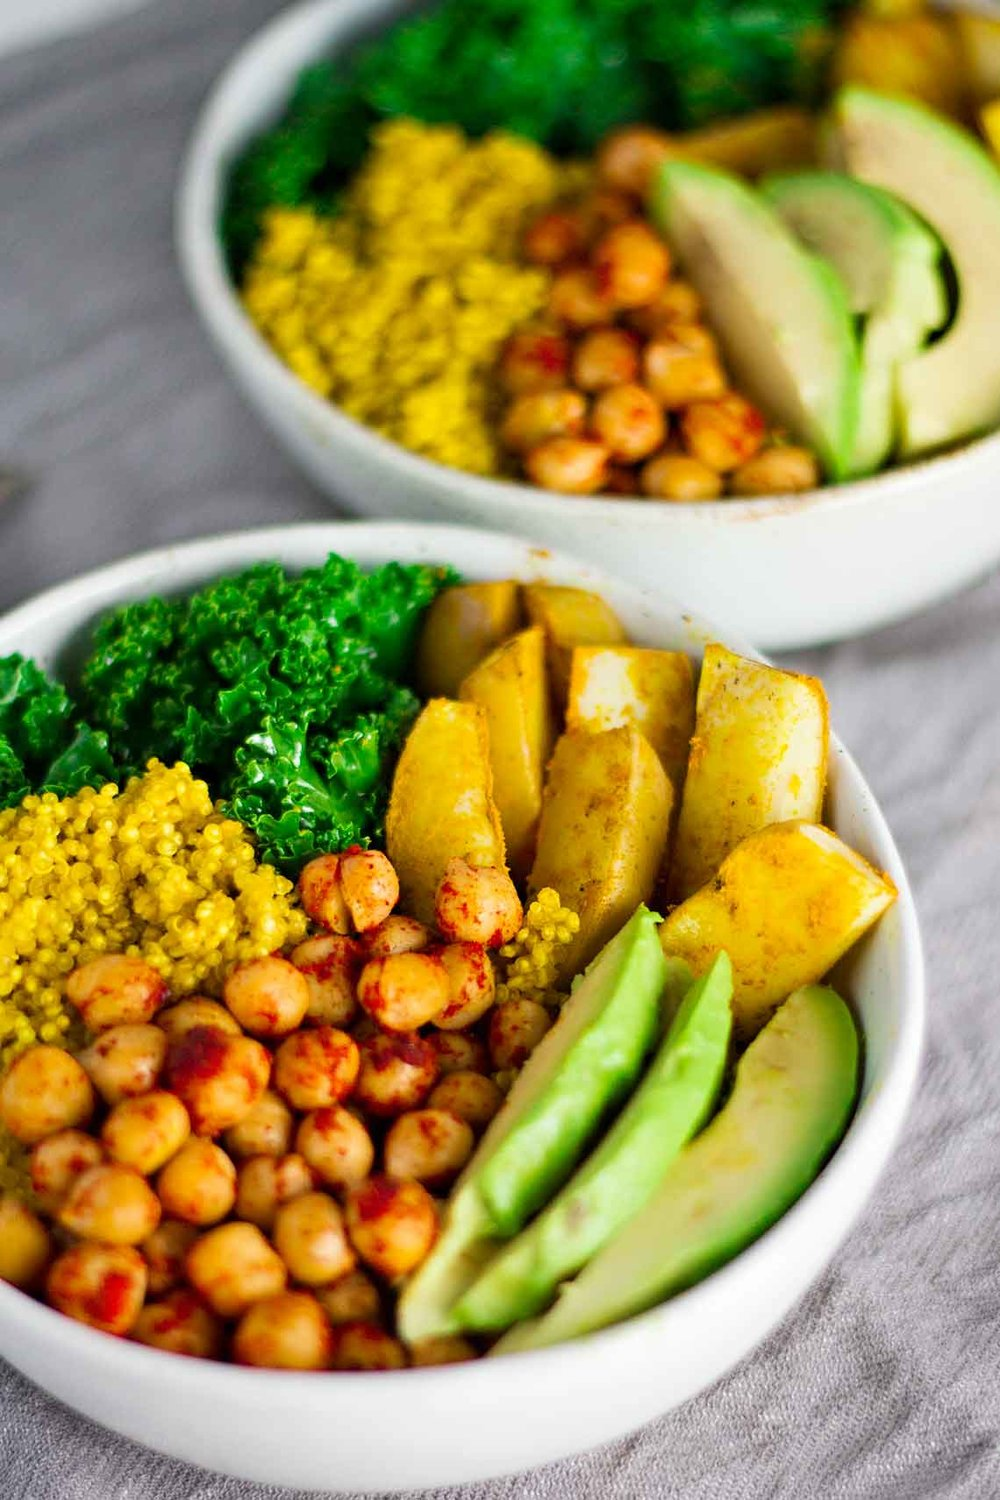 Vegan Turmeric Quinoa Power Bowl  - Source: Jaroflemons.com